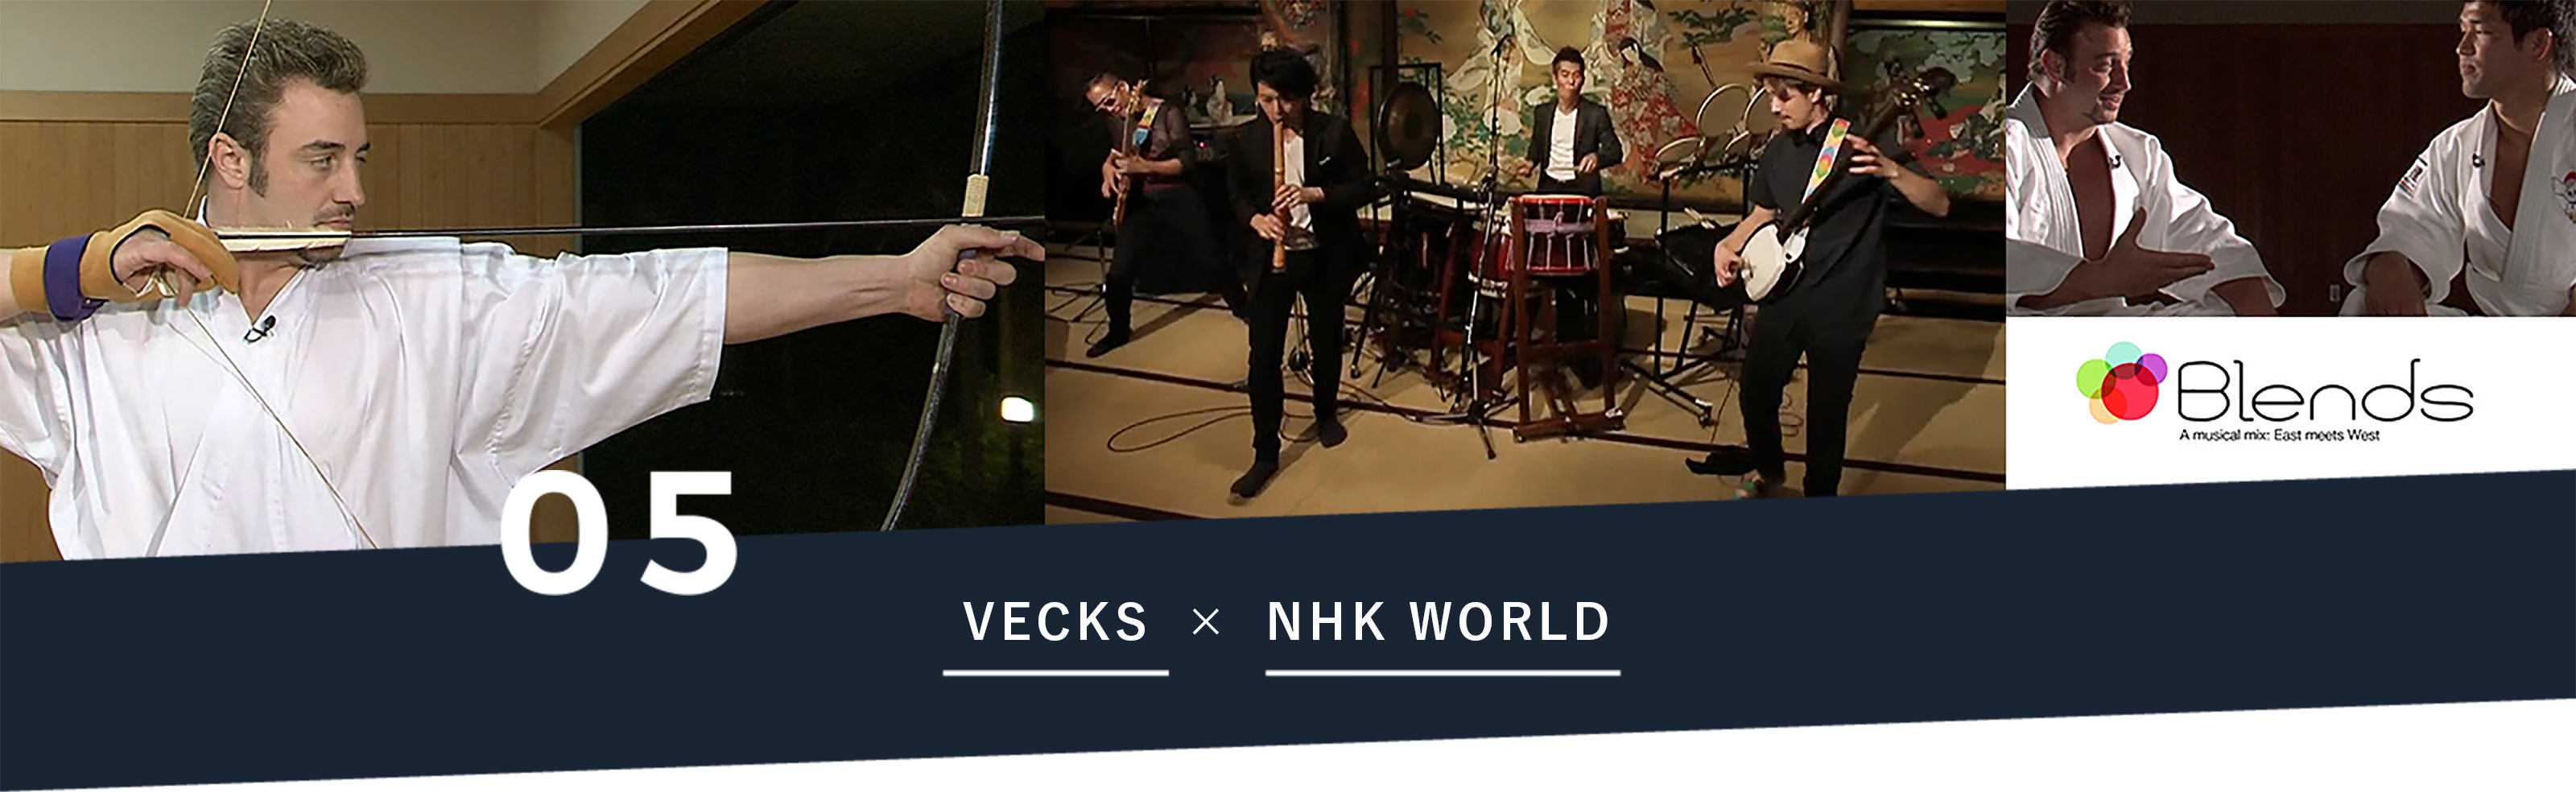 05 VECKS × NHK WORLD